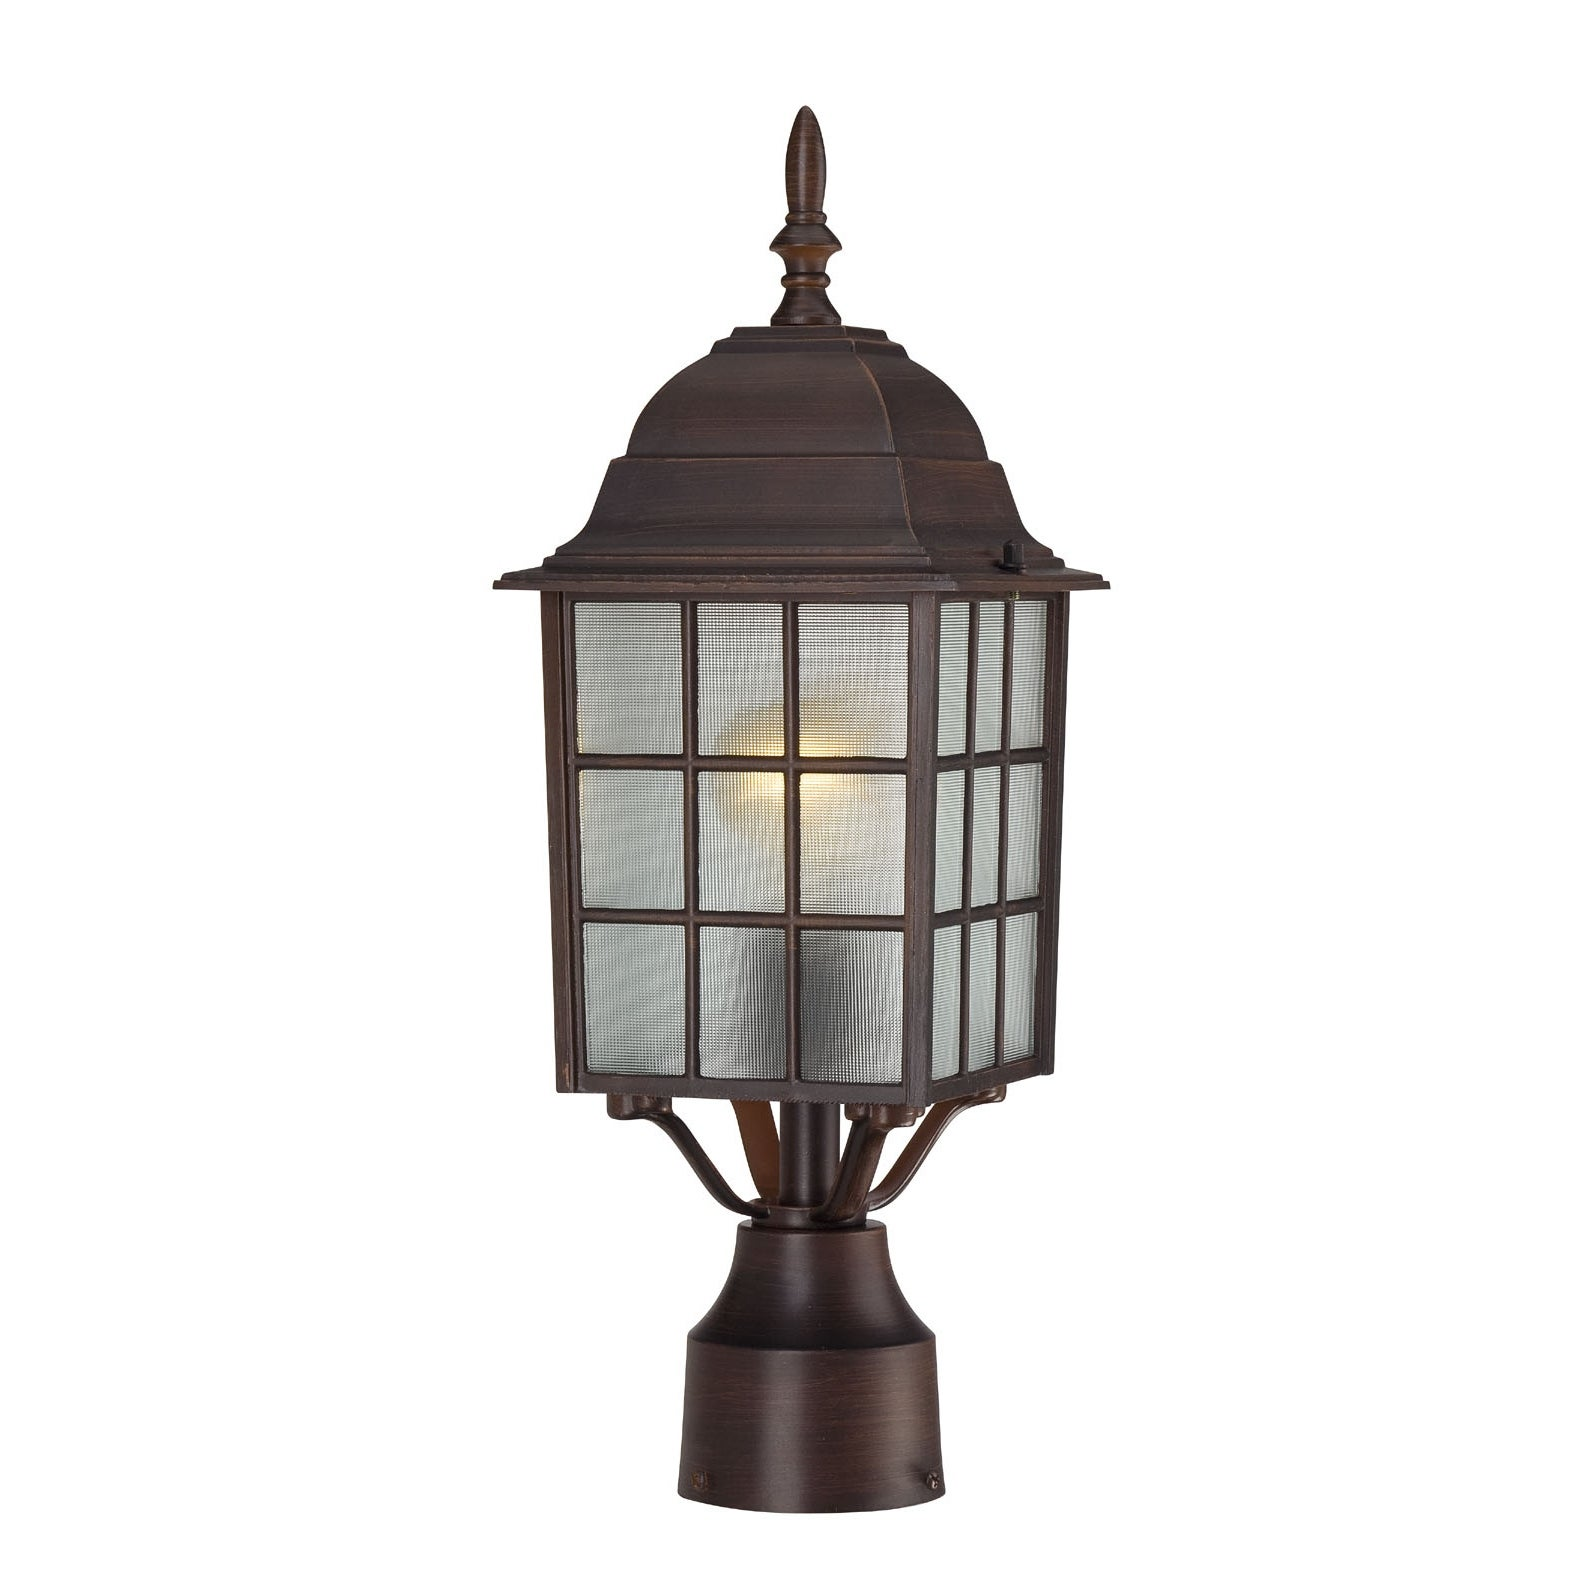 Nuvo Adams 1 light Rustic Bronze 17 inch Post Fixture